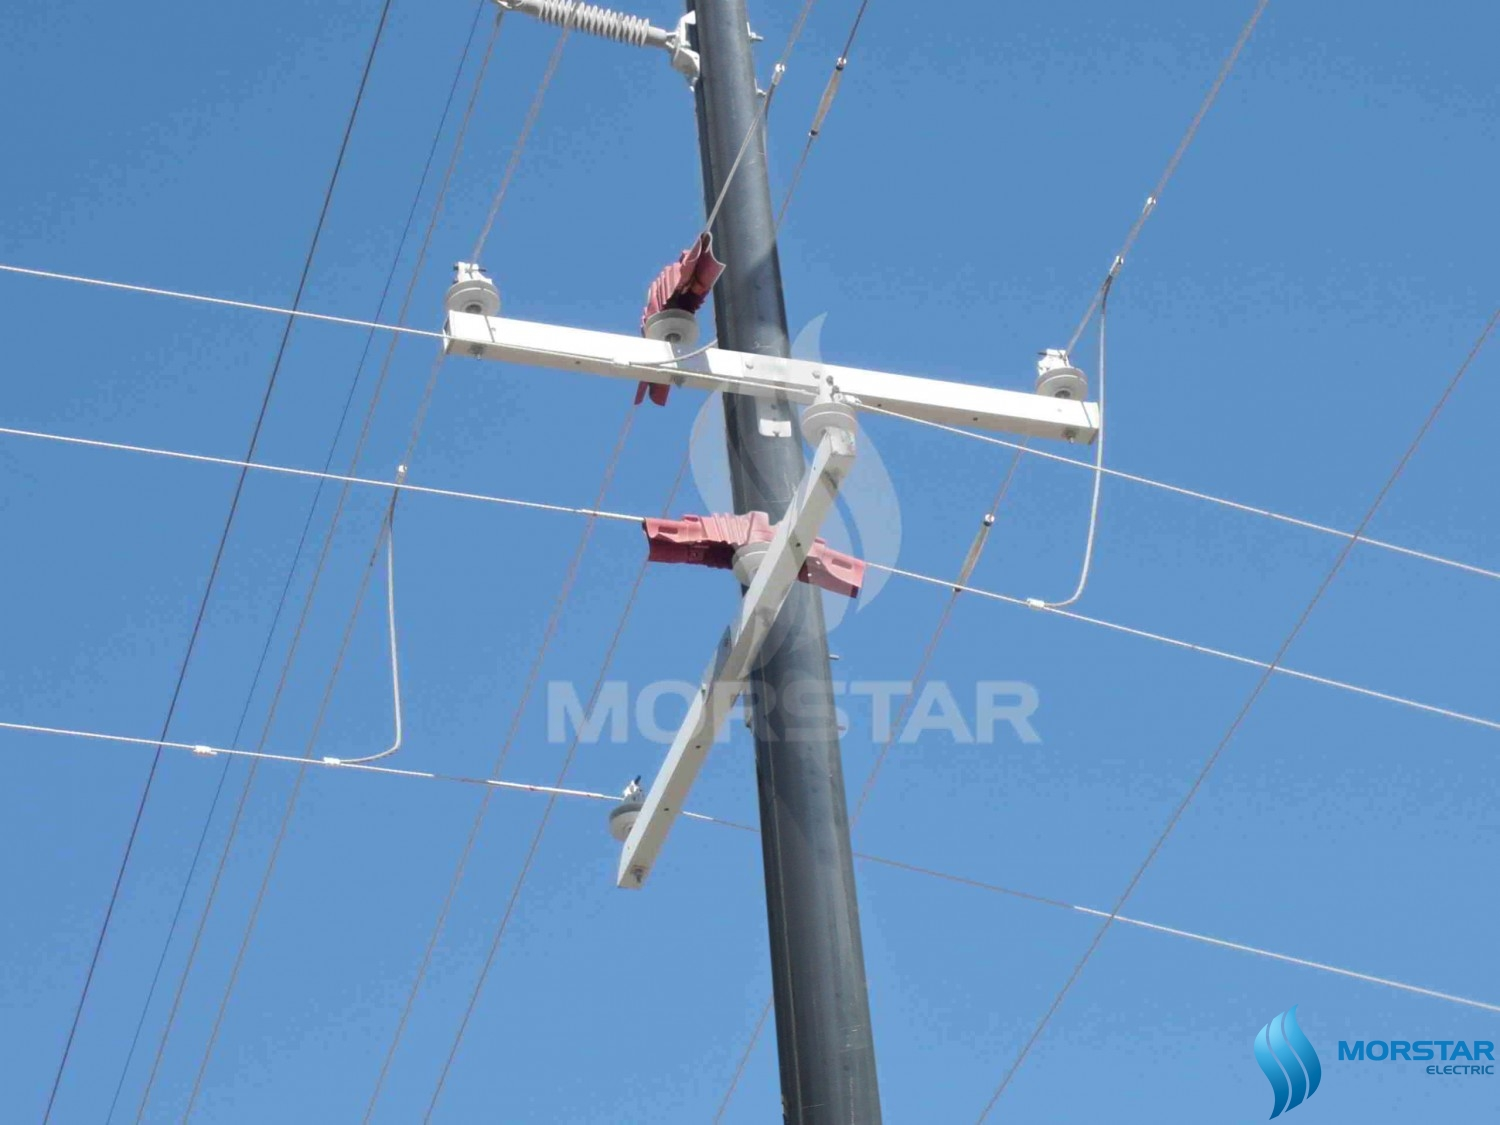 FRP power pole and FRP crossarm, FRP crossarm, composite material, power, electric, power pole, morstar